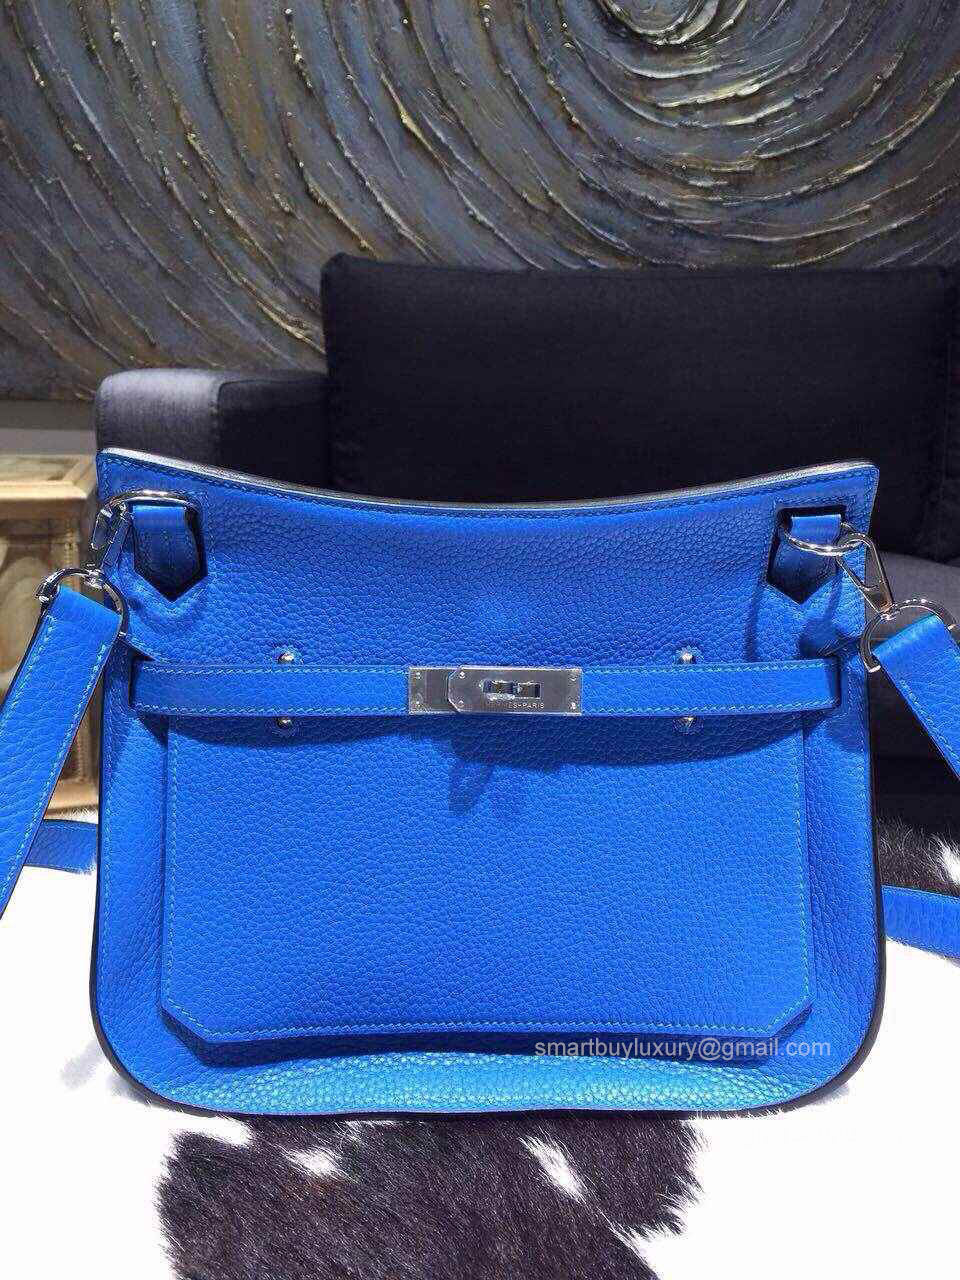 Hermes Jypsiere 28 Bag Bleu Hydra T7 Taurillon Clemence Handstitched